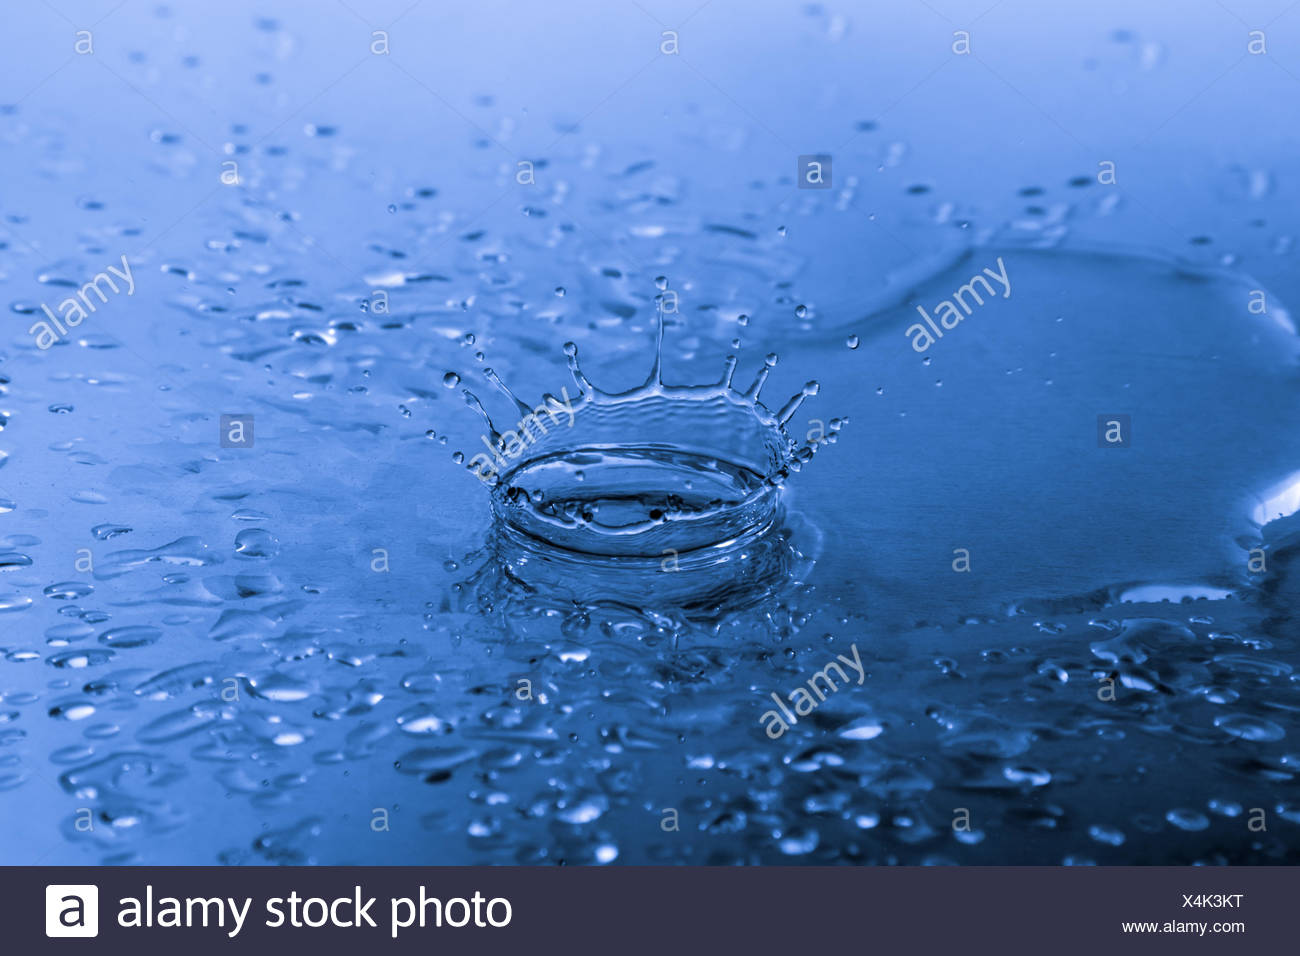 water droplet splash - Stock Image